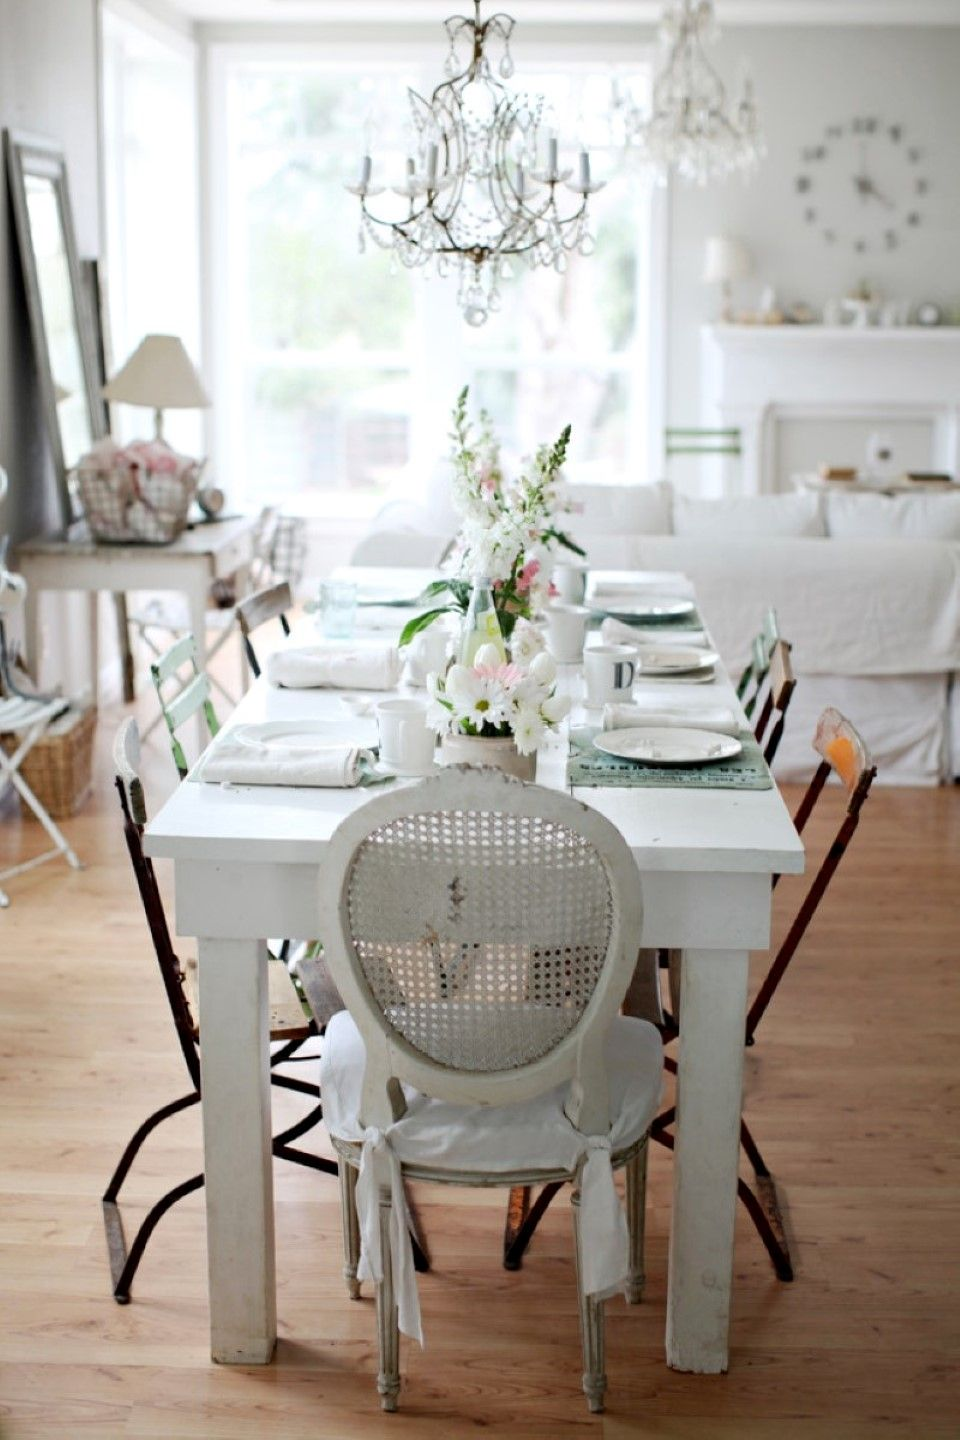 7 Antique Essentials For Rustic Chic Décor  Rustic Chic New Shabby Chic Dining Room Table Review